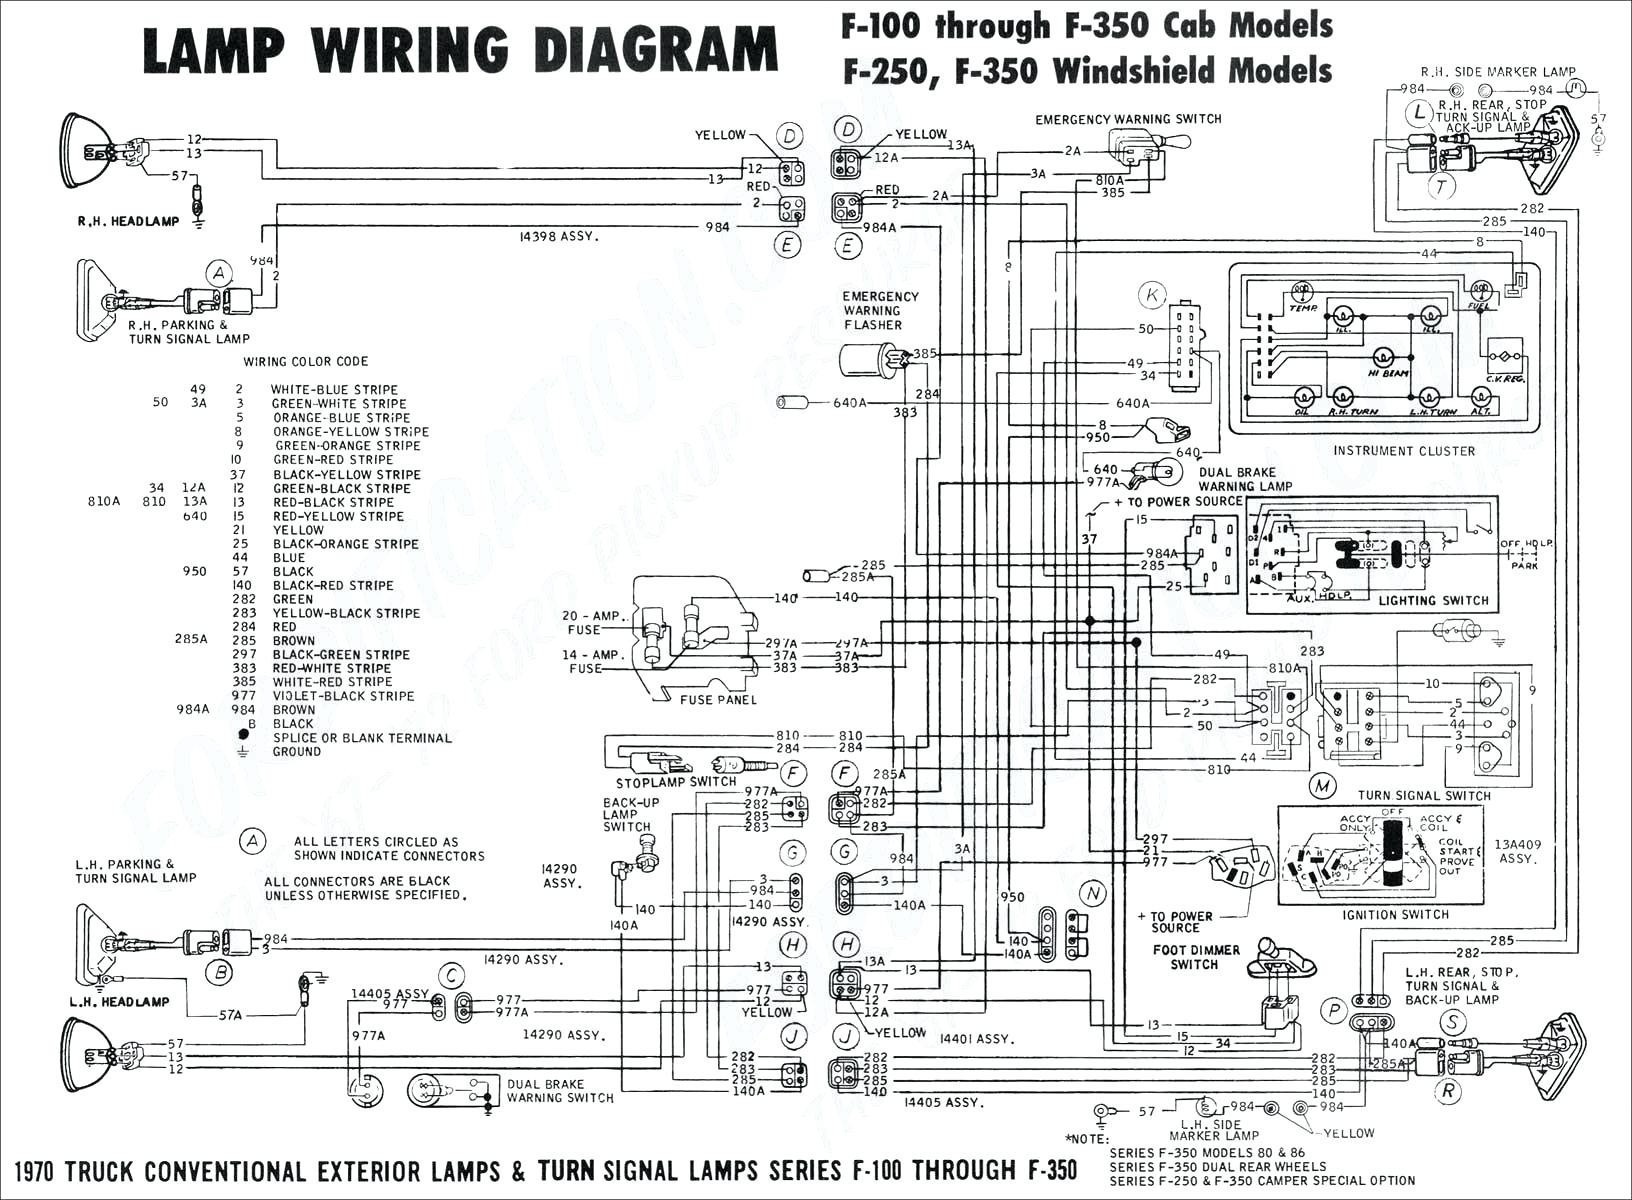 2006 F150 Engine Diagram ford F150 Engine Diagram Another Blog About Wiring Diagram • Of 2006 F150 Engine Diagram Free ford Trucks Wiring Diagrams Wiring Diagram for ford F150